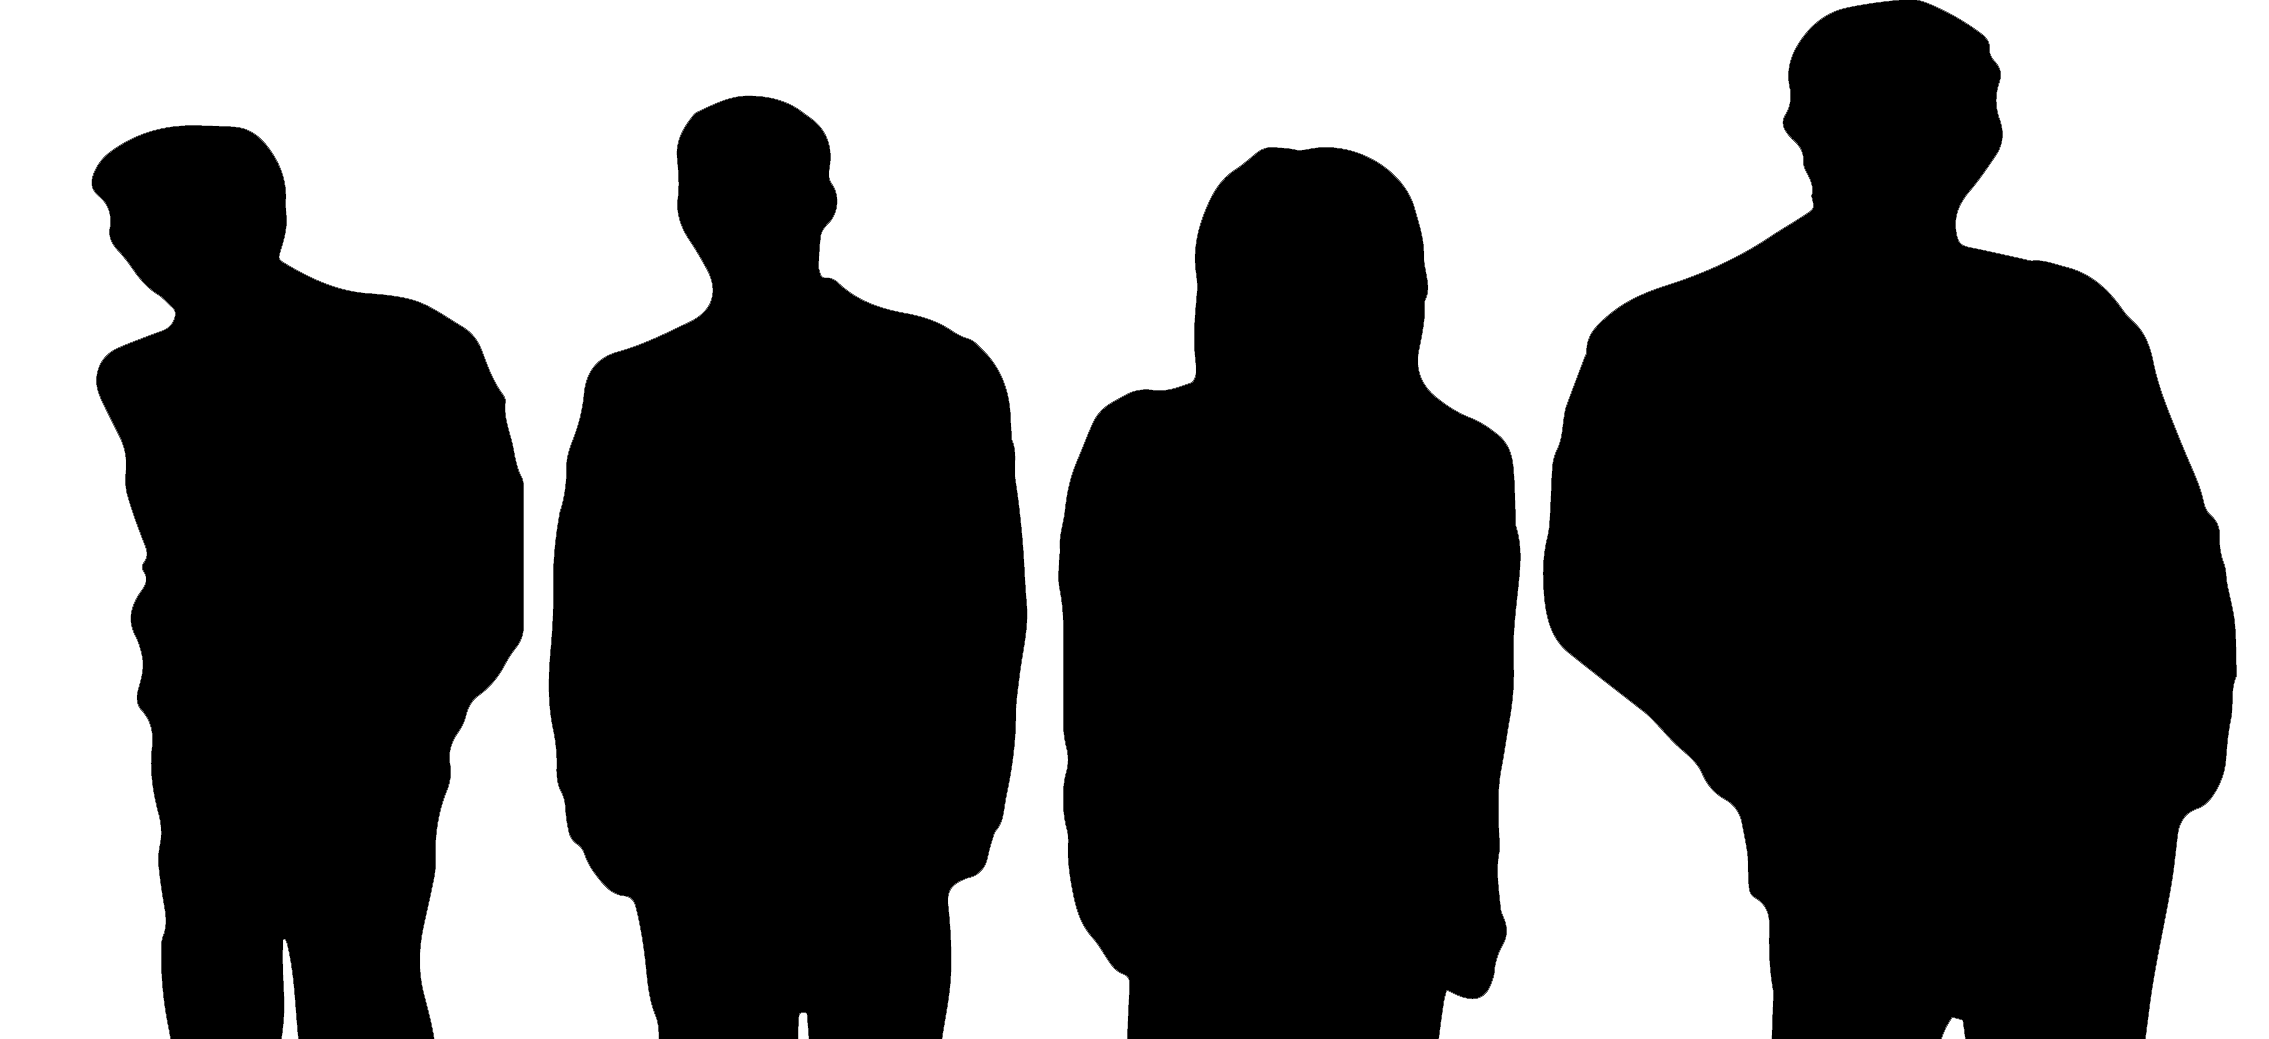 Rock band silhouette png. Get to know us